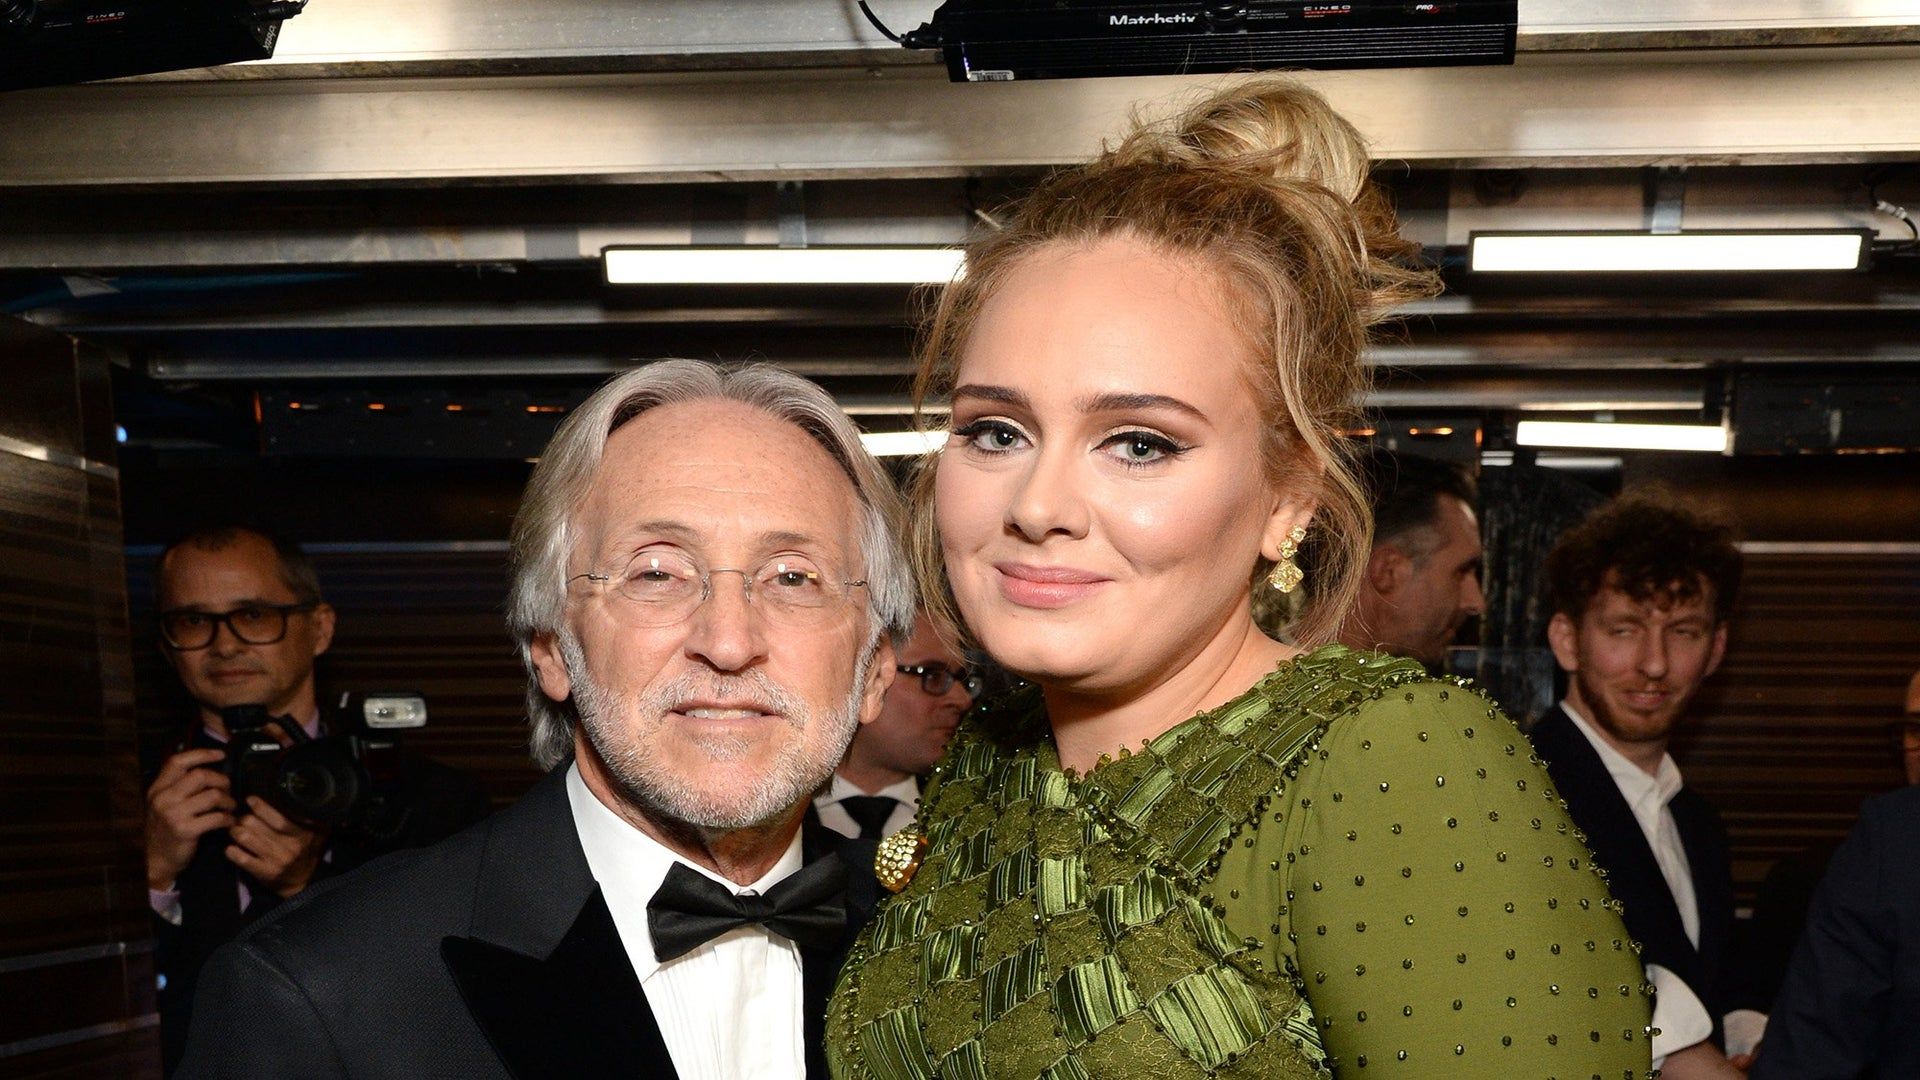 Grammys President Neil Portnow: 'I Don't Think There's a Race Problem at All'